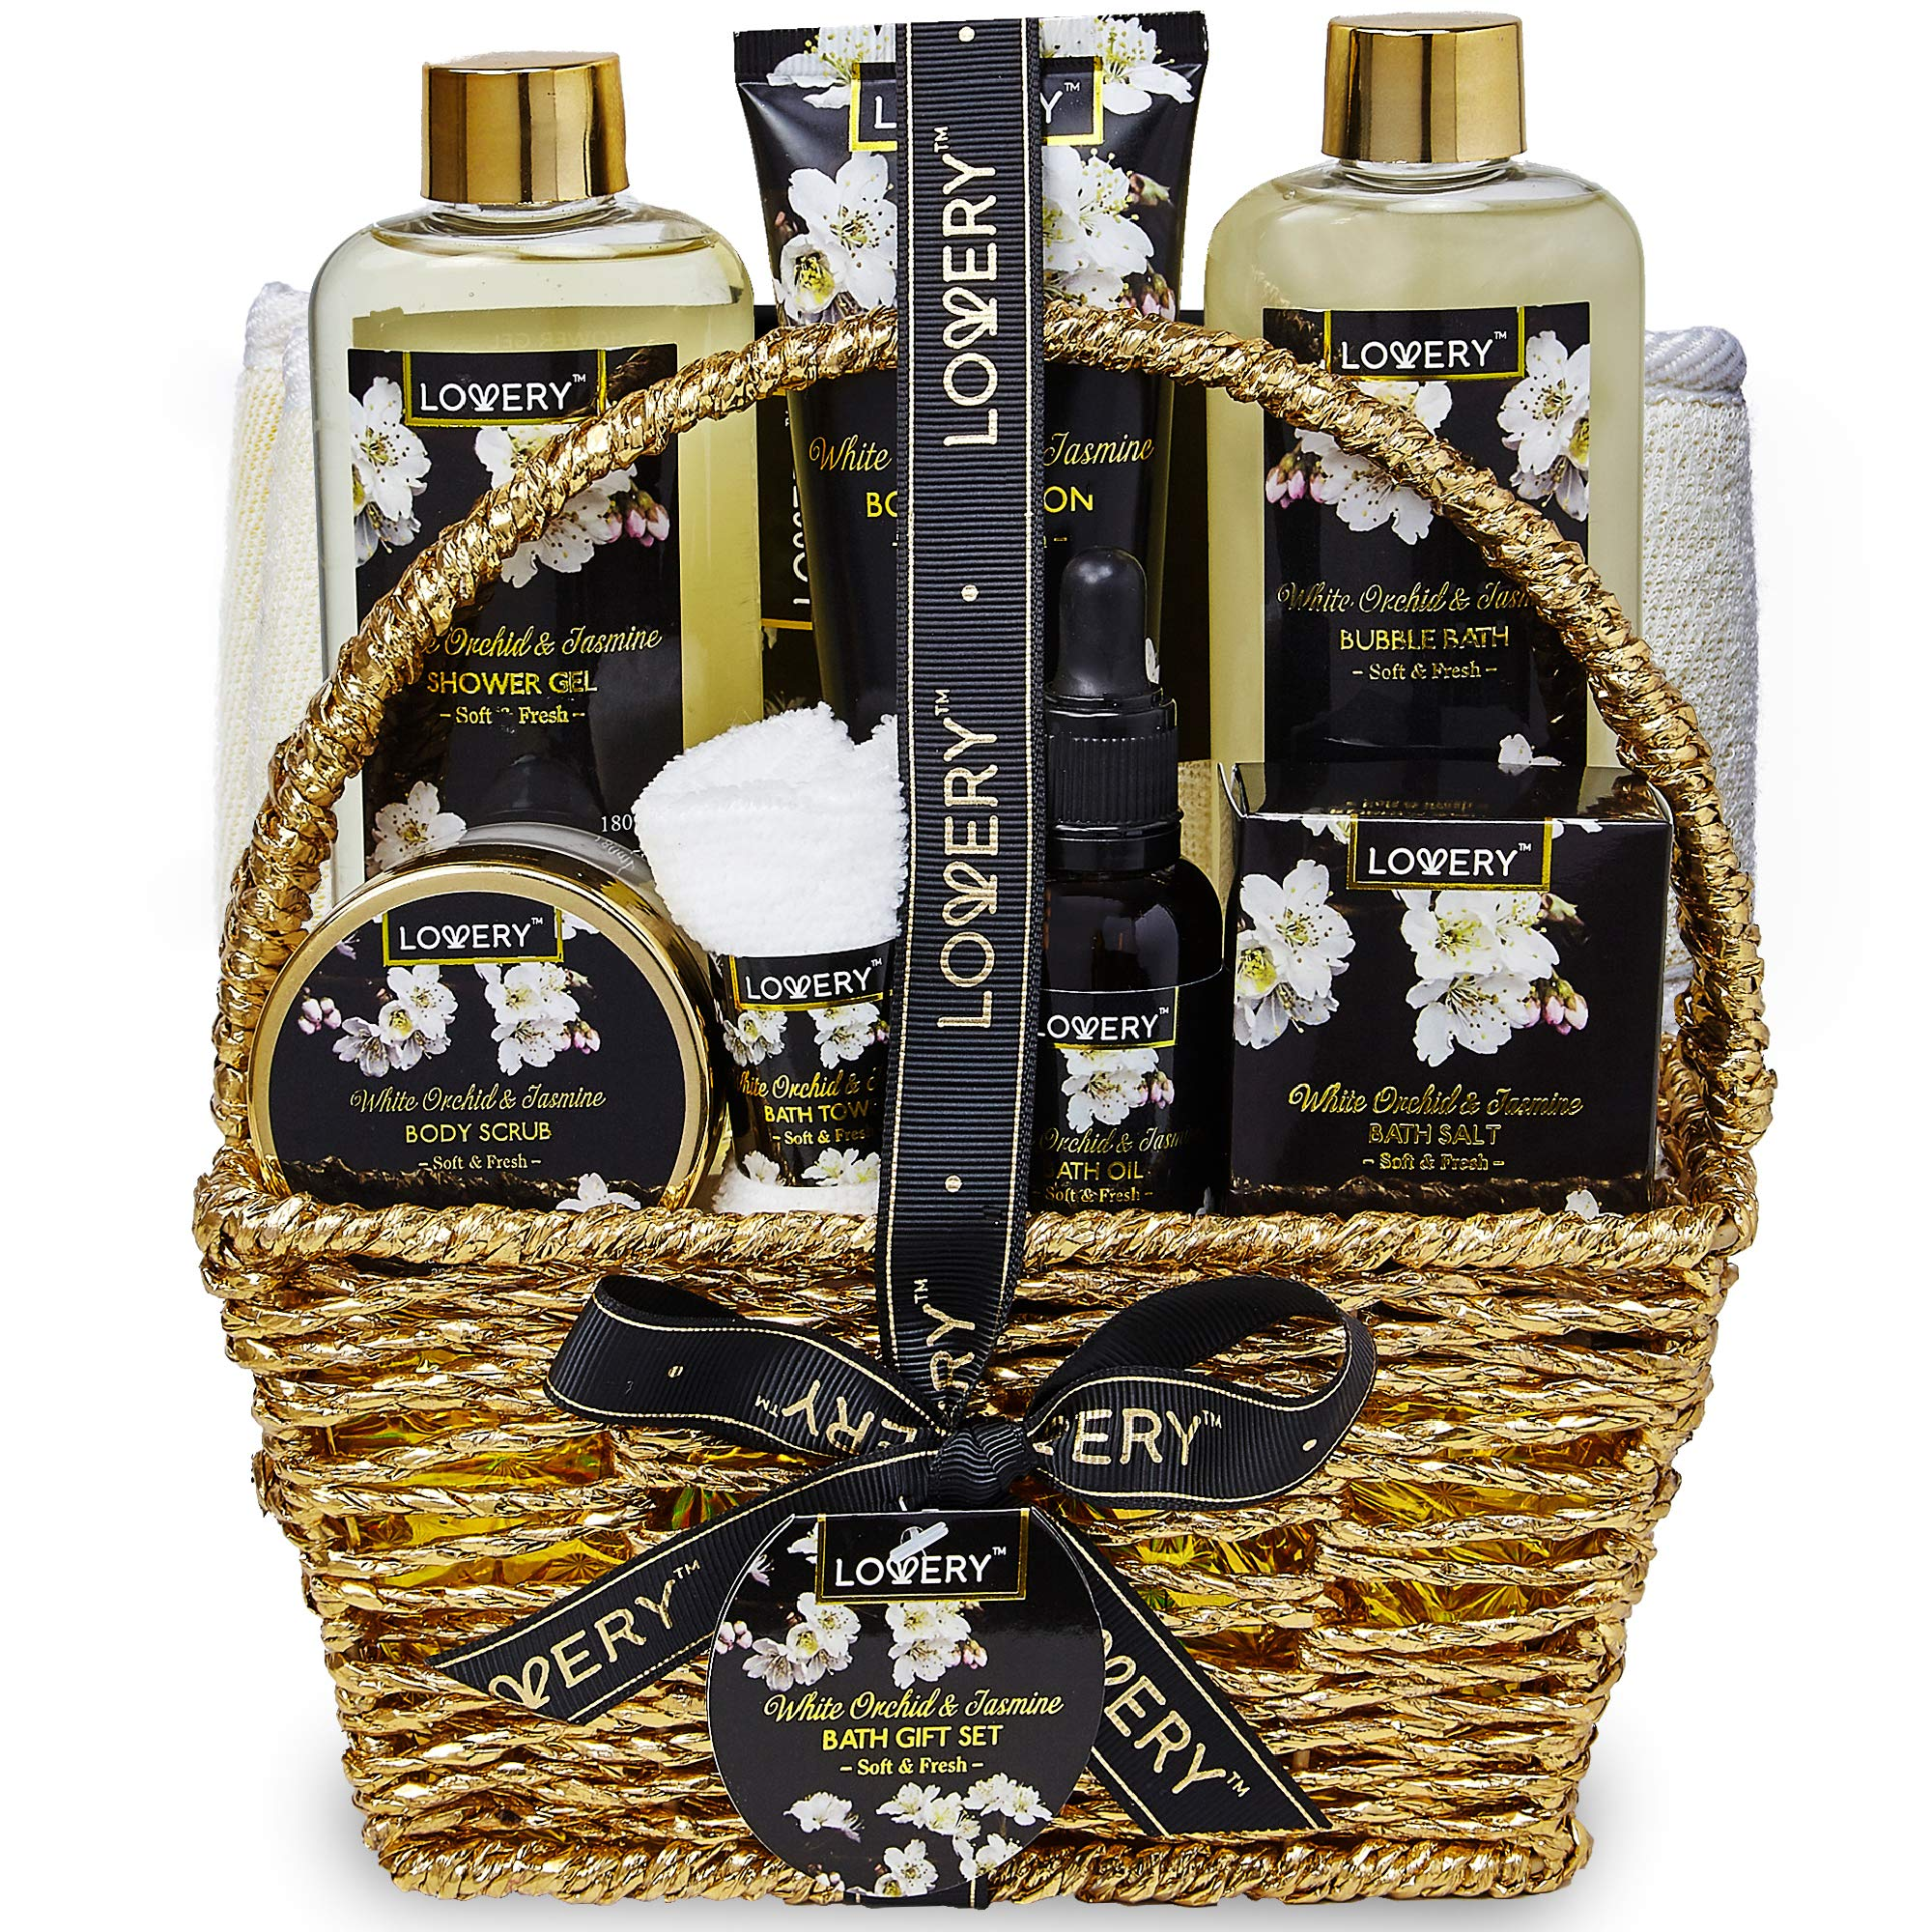 Easter Basket Bath and Body Gift Basket for Women and Men – Orchid and Jasmine Home Spa Set With Body Scrubs, Lotions, Oils, Gels and More - 9 Piece Set